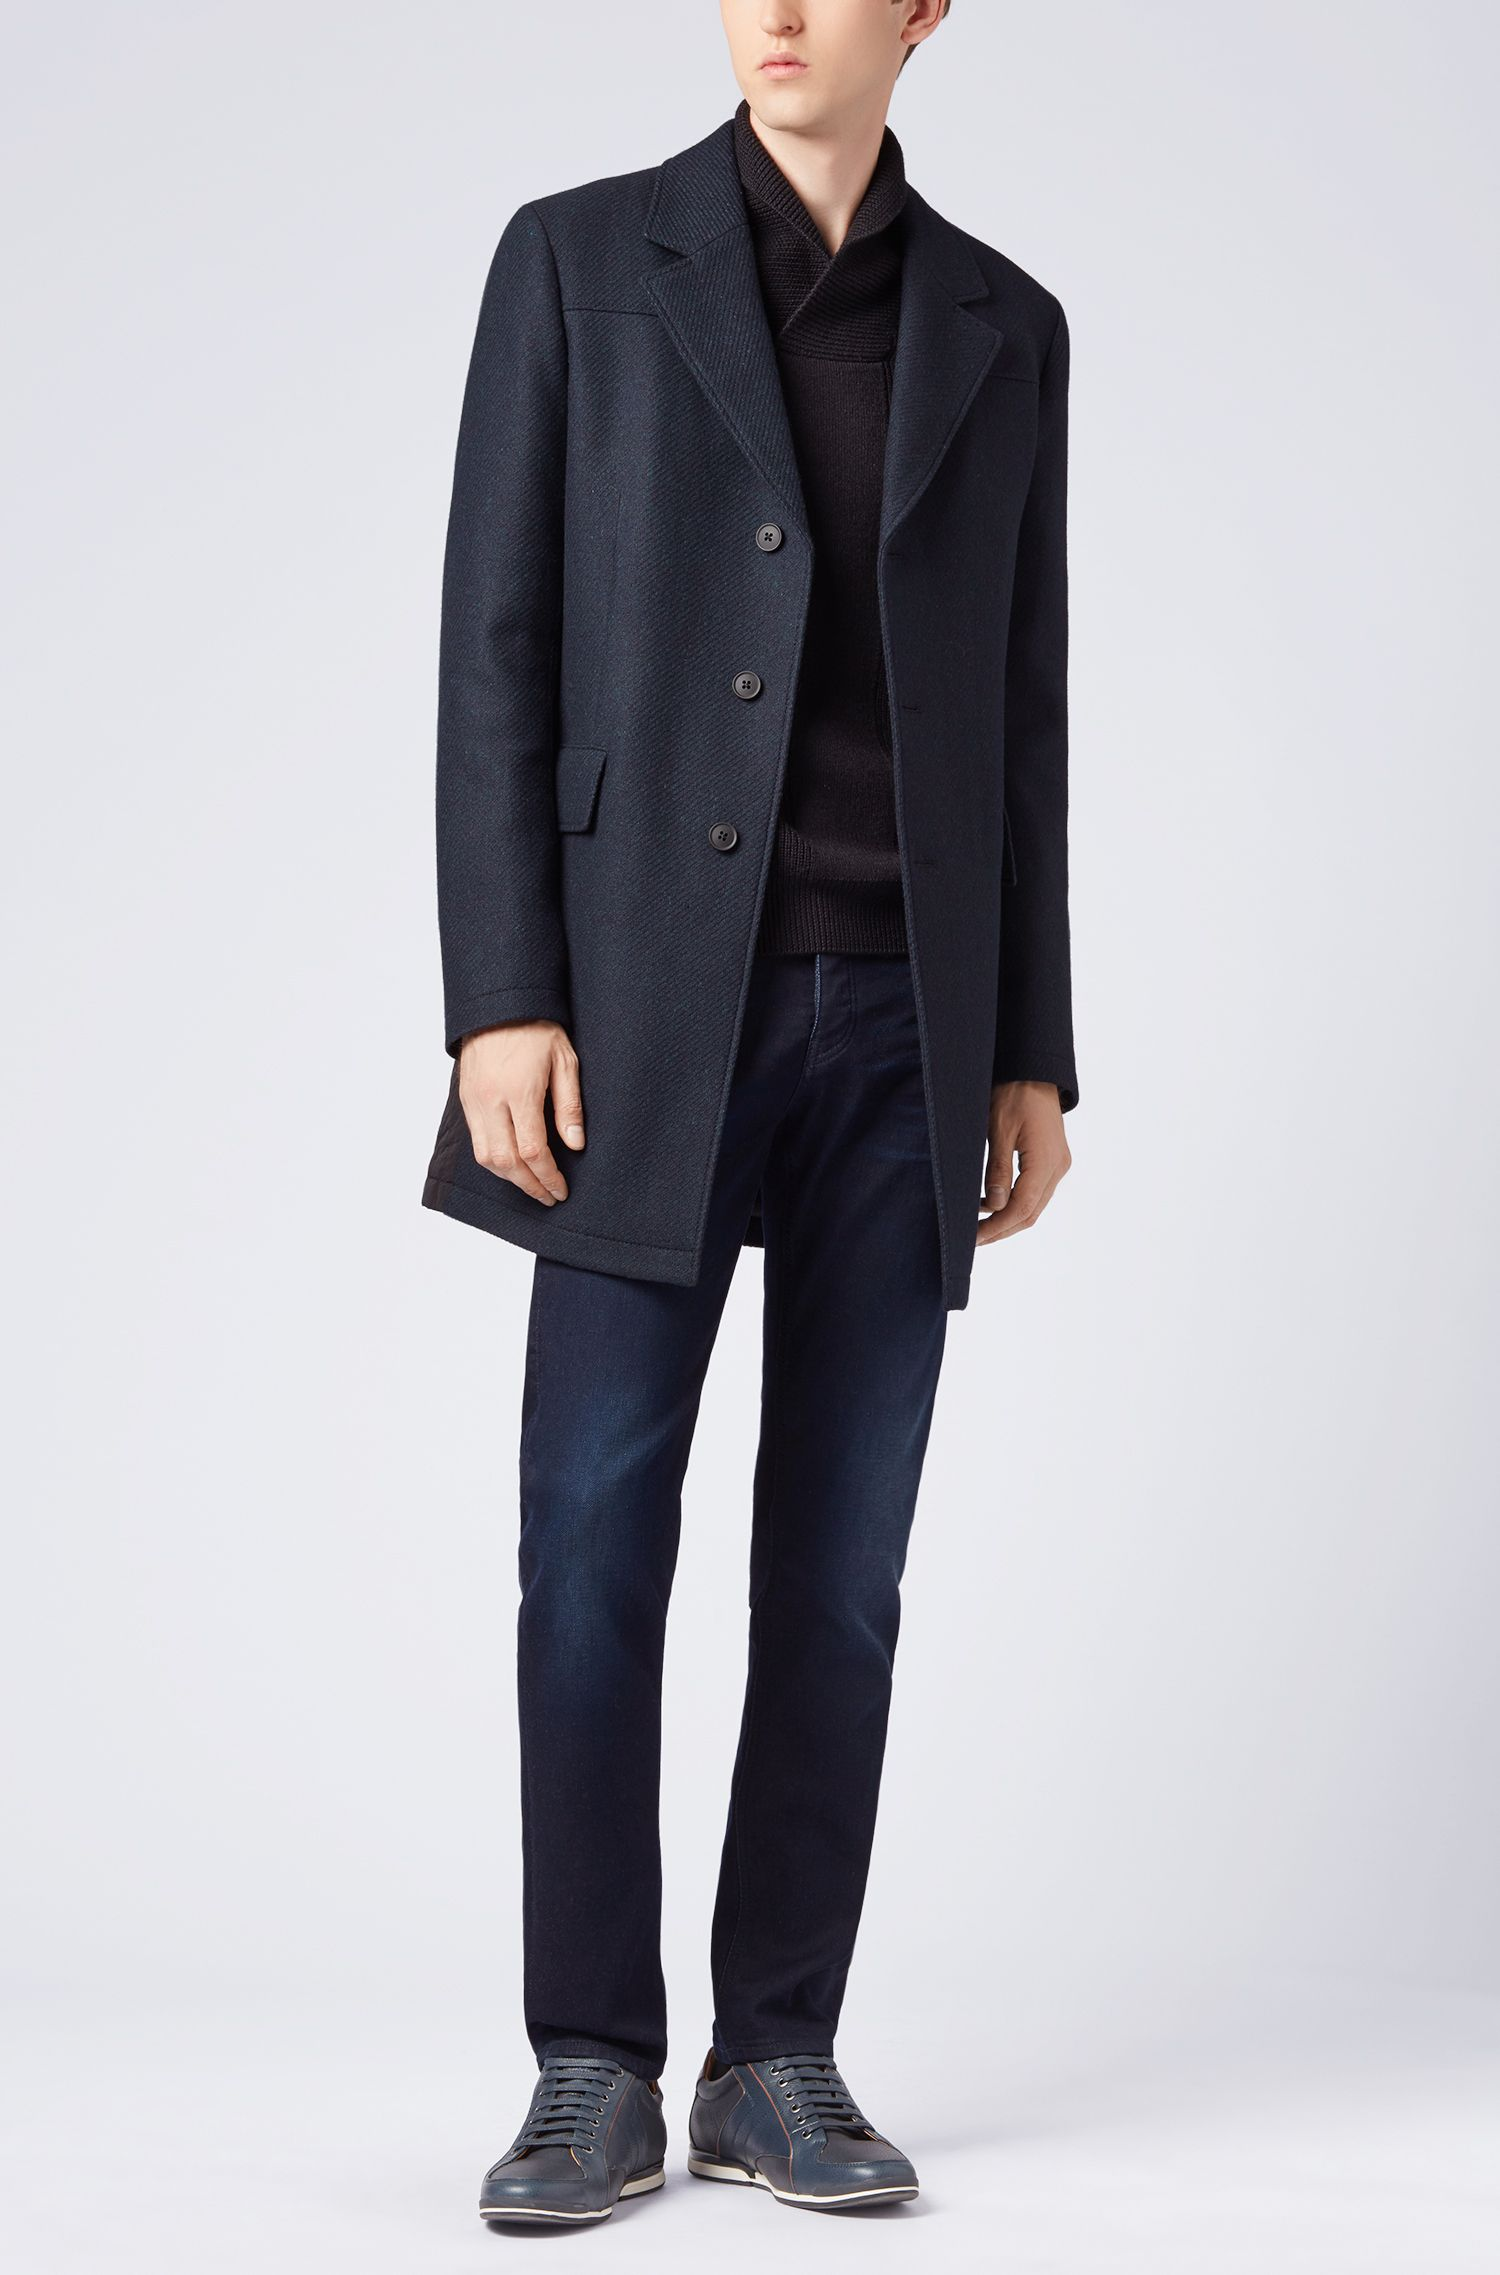 Slim-fit coat in a textured Italian-wool blend